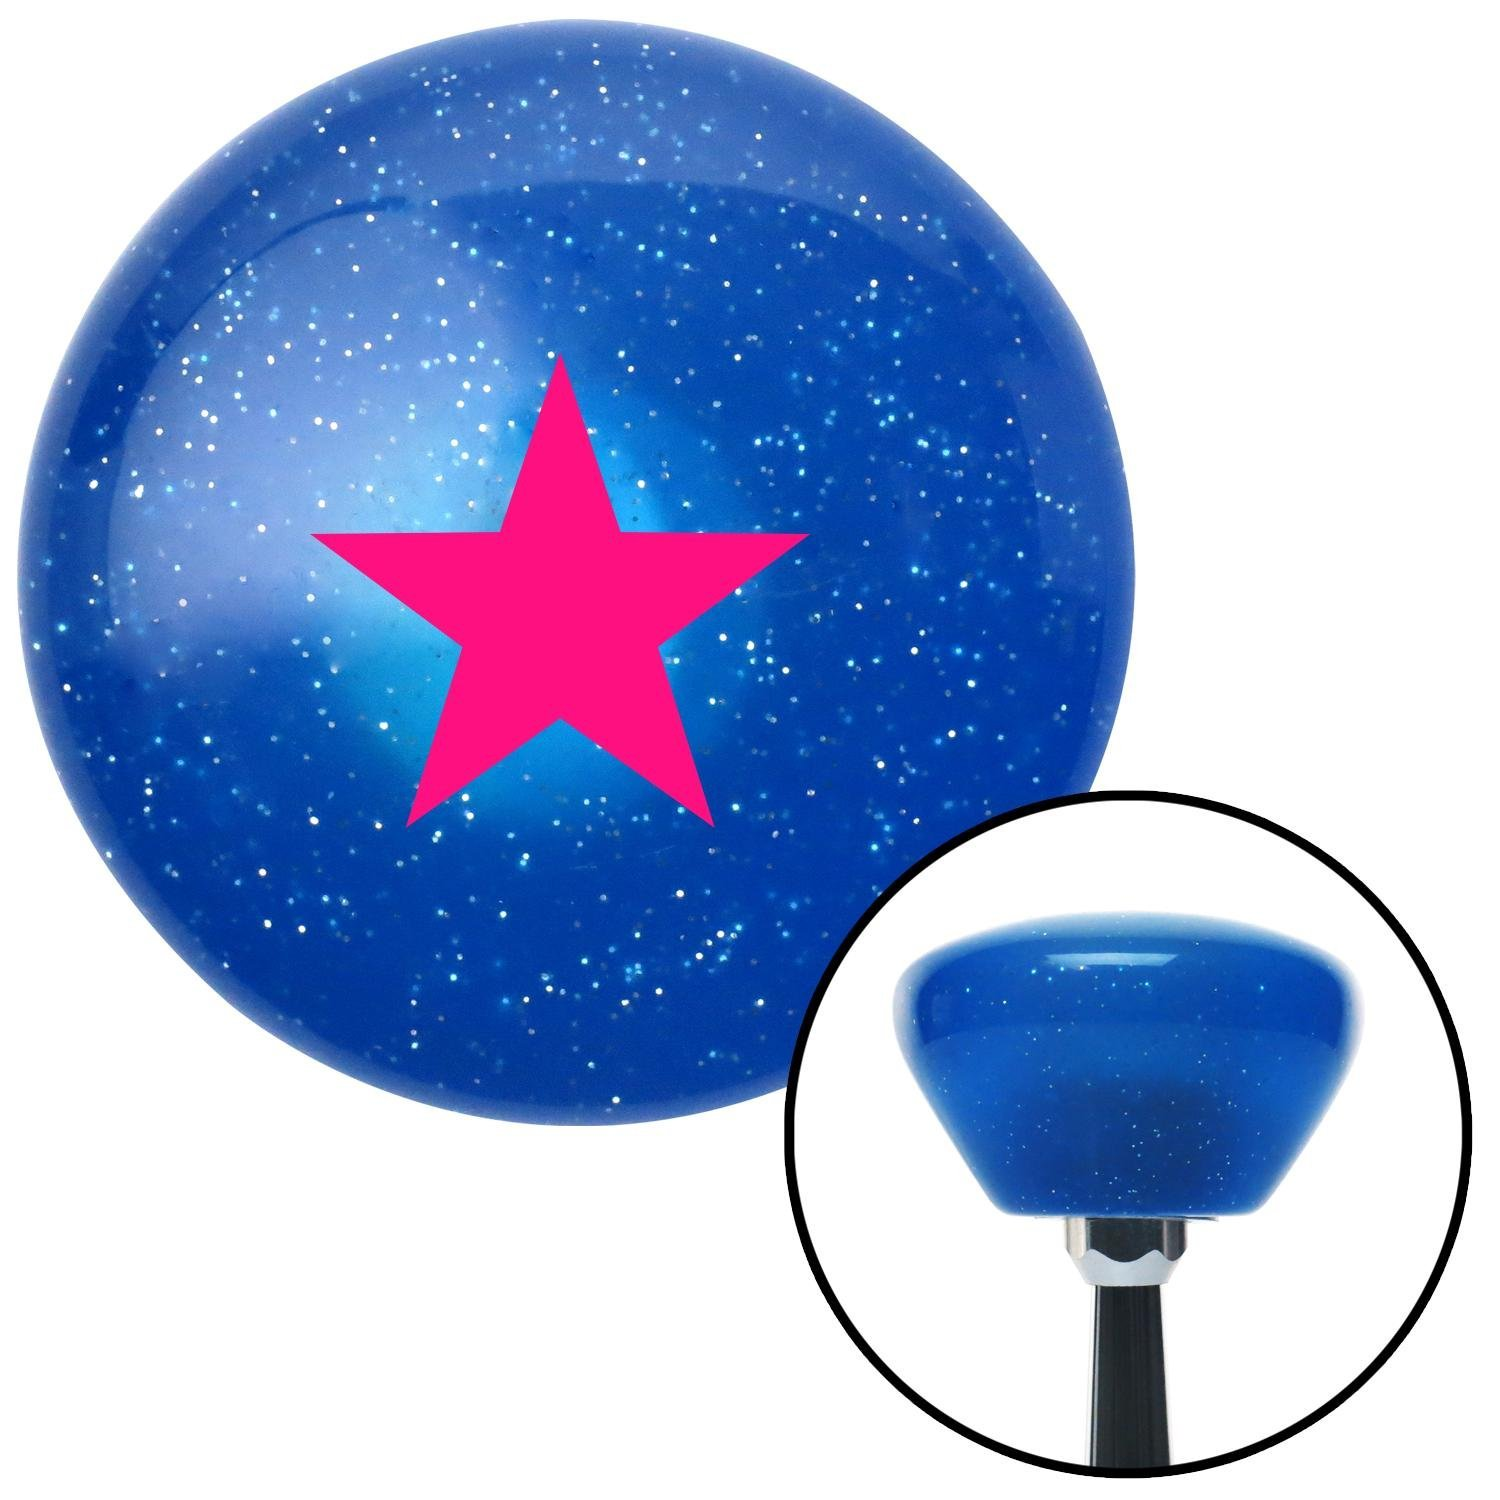 American Shifter 190464 Blue Retro Metal Flake Shift Knob with M16 x 1.5 Insert Pink Officer 07 - Rear Admiral, Lower Half